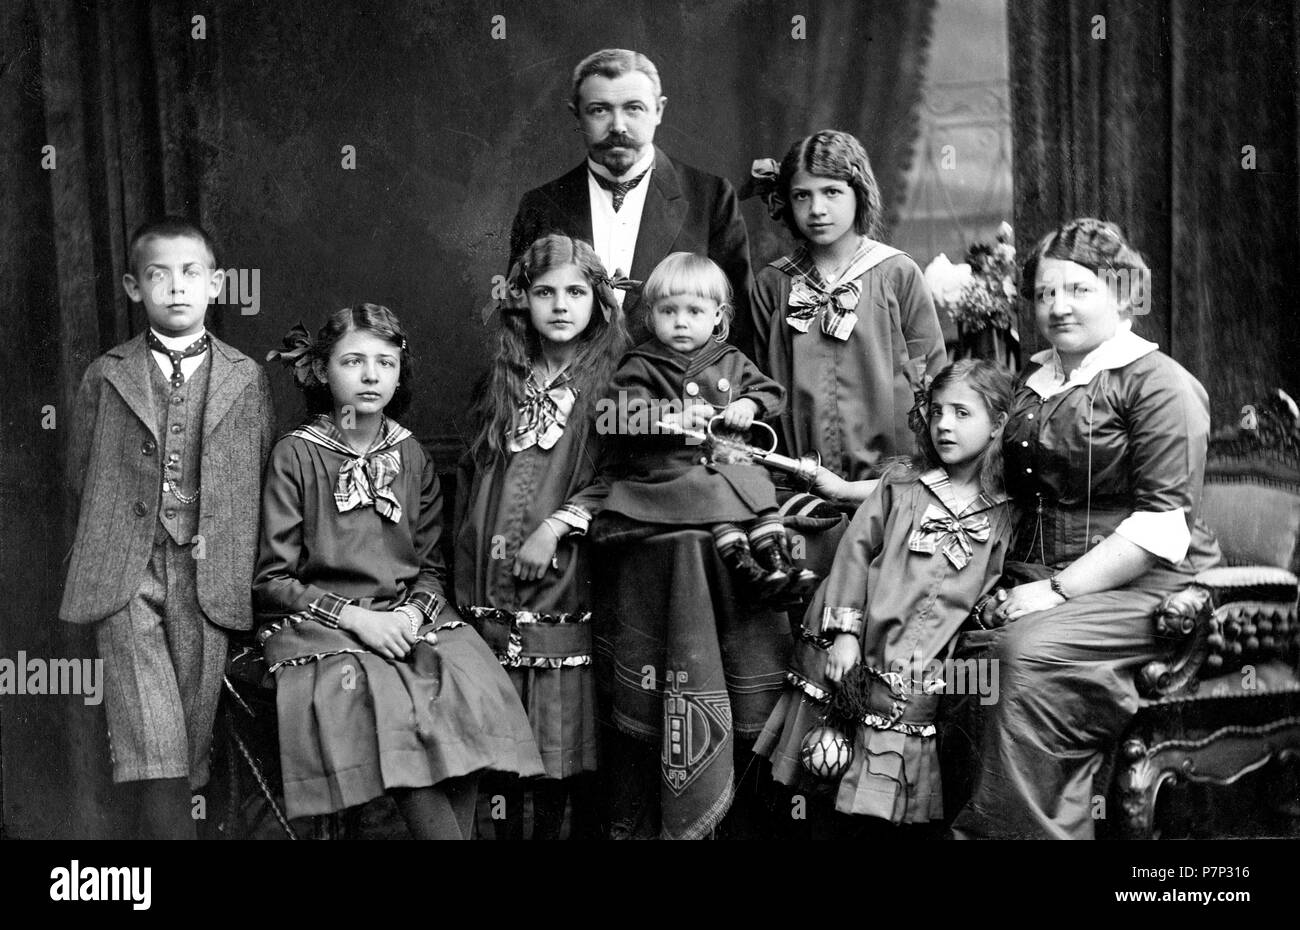 Family with many children ca. 1910, exact place unknown, Germany - Stock Image